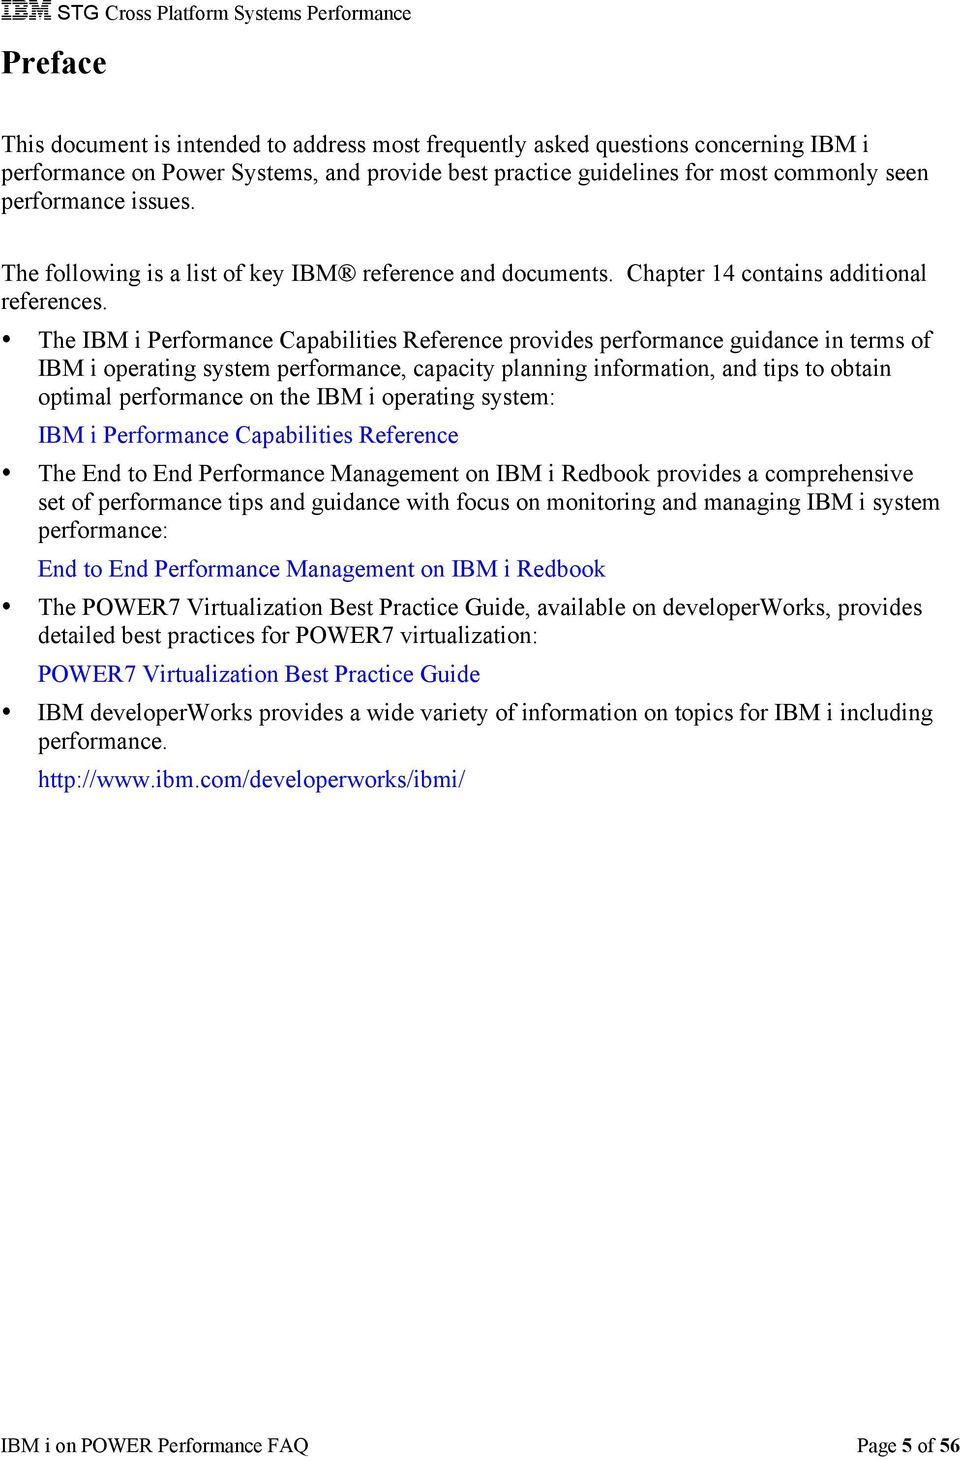 The IBM i Performance Capabilities Reference provides performance guidance in terms of IBM i operating system performance, capacity planning information, and tips to obtain optimal performance on the